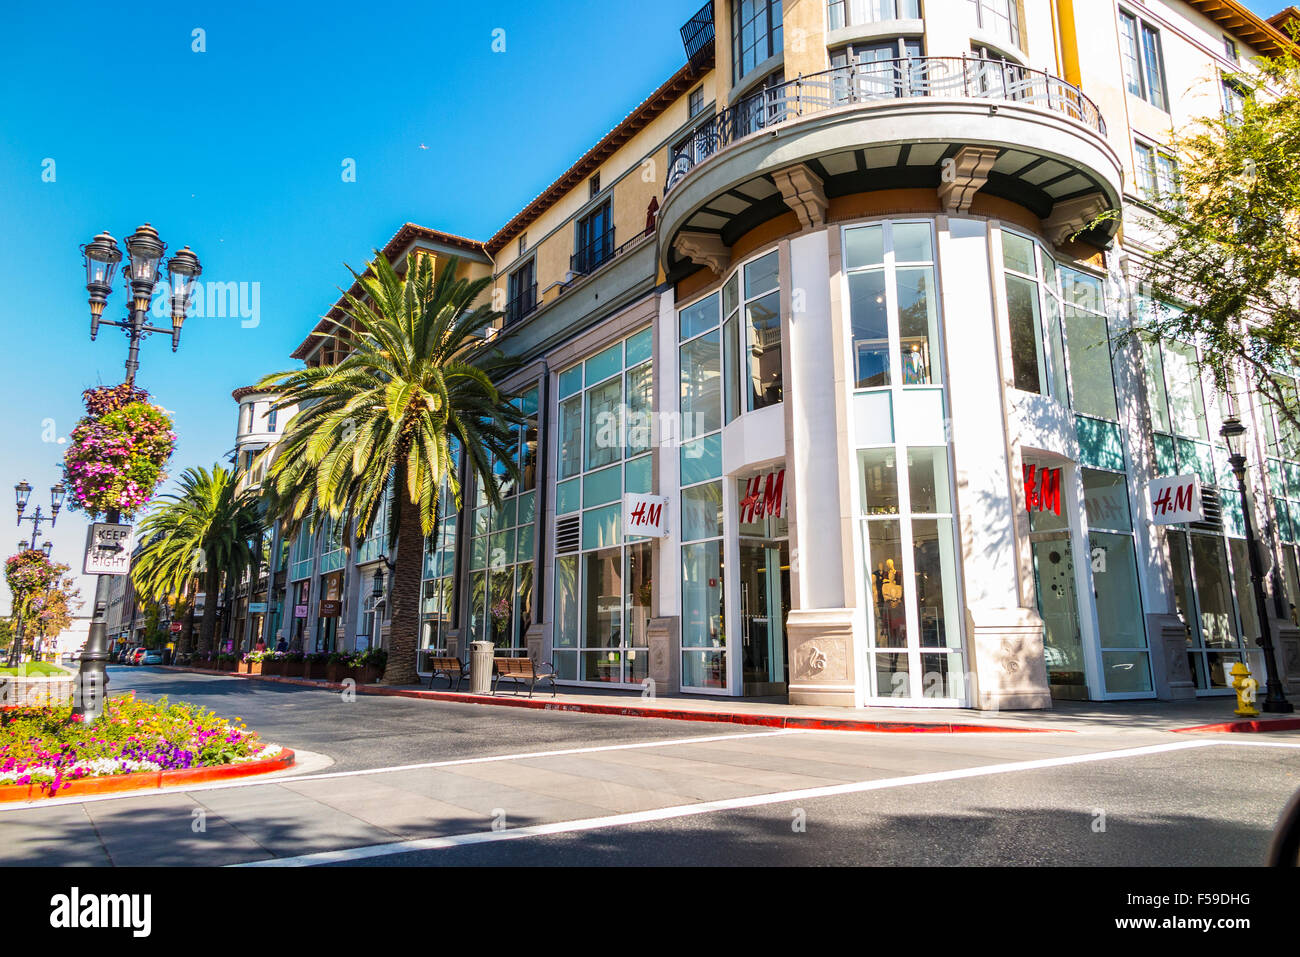 Santana Row Stores >> An H M Store At San Jose S Santana Row Open Air Shopping Mall H M Is